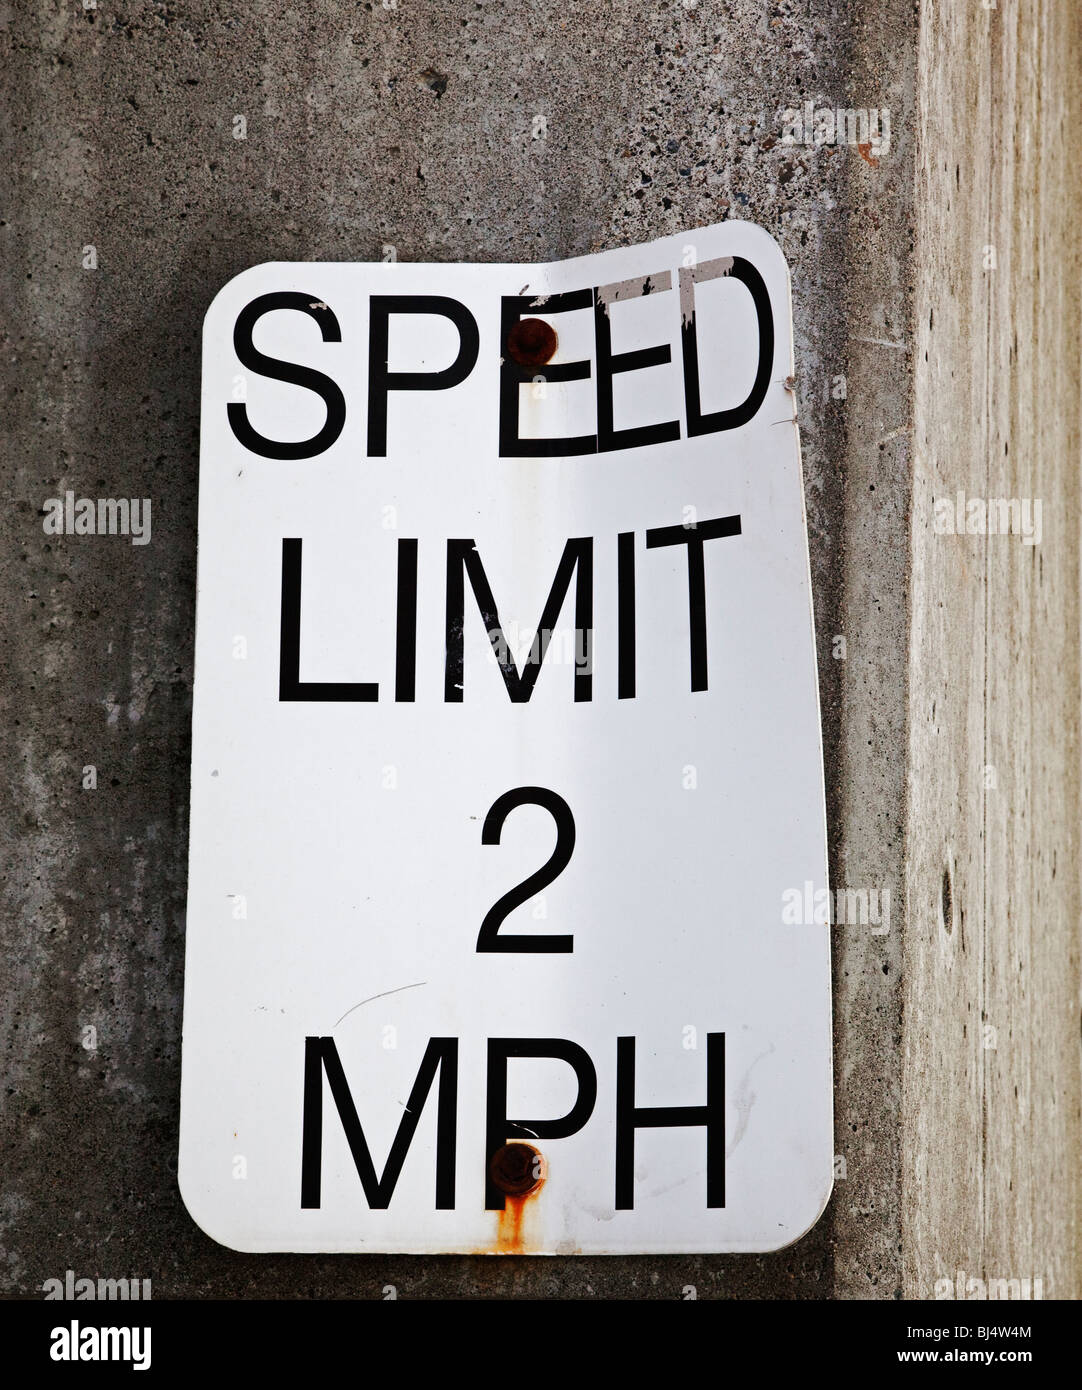 speed limit 2 mph sign at dock entrance on waterfront - Stock Image